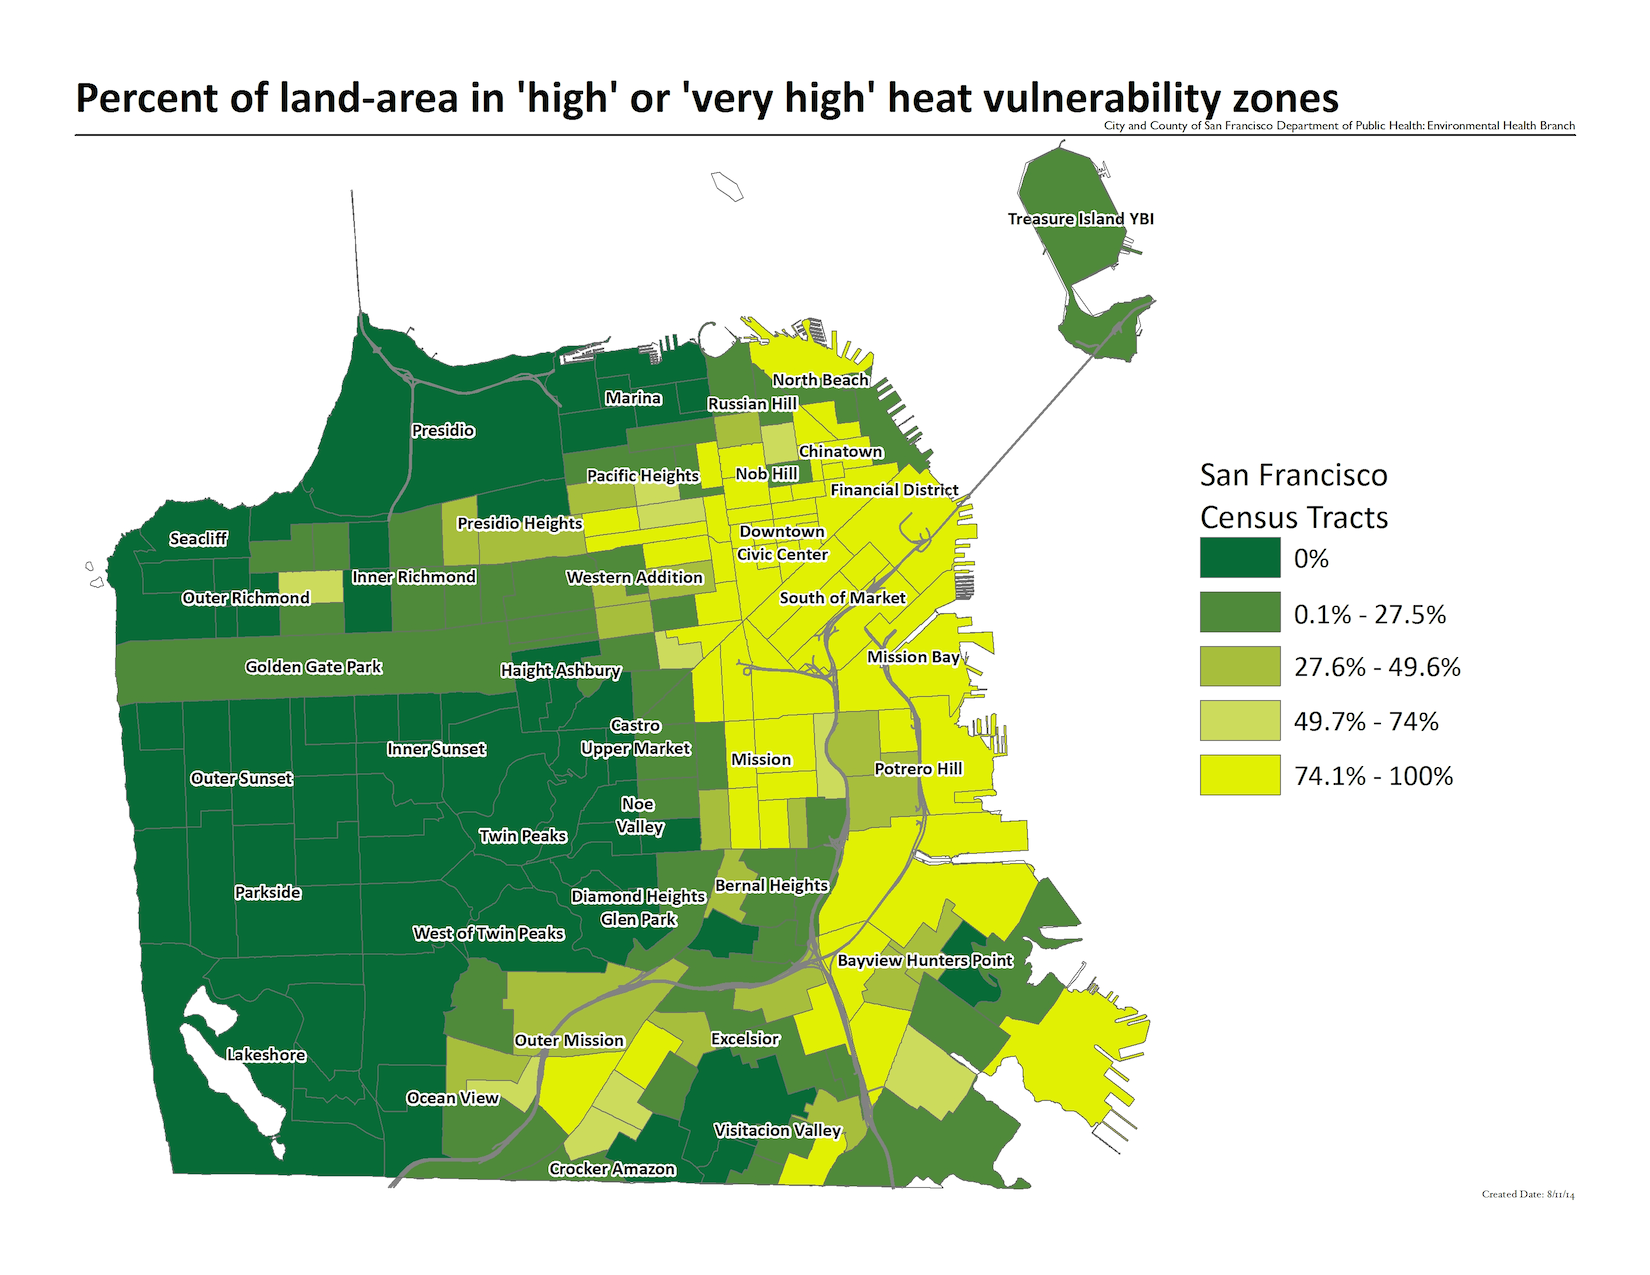 Map of the percent land-area in high or very high heat vulnerability zones. The highest concentrations include census tracts in Mission Bay, SOMA, and the Financial District.